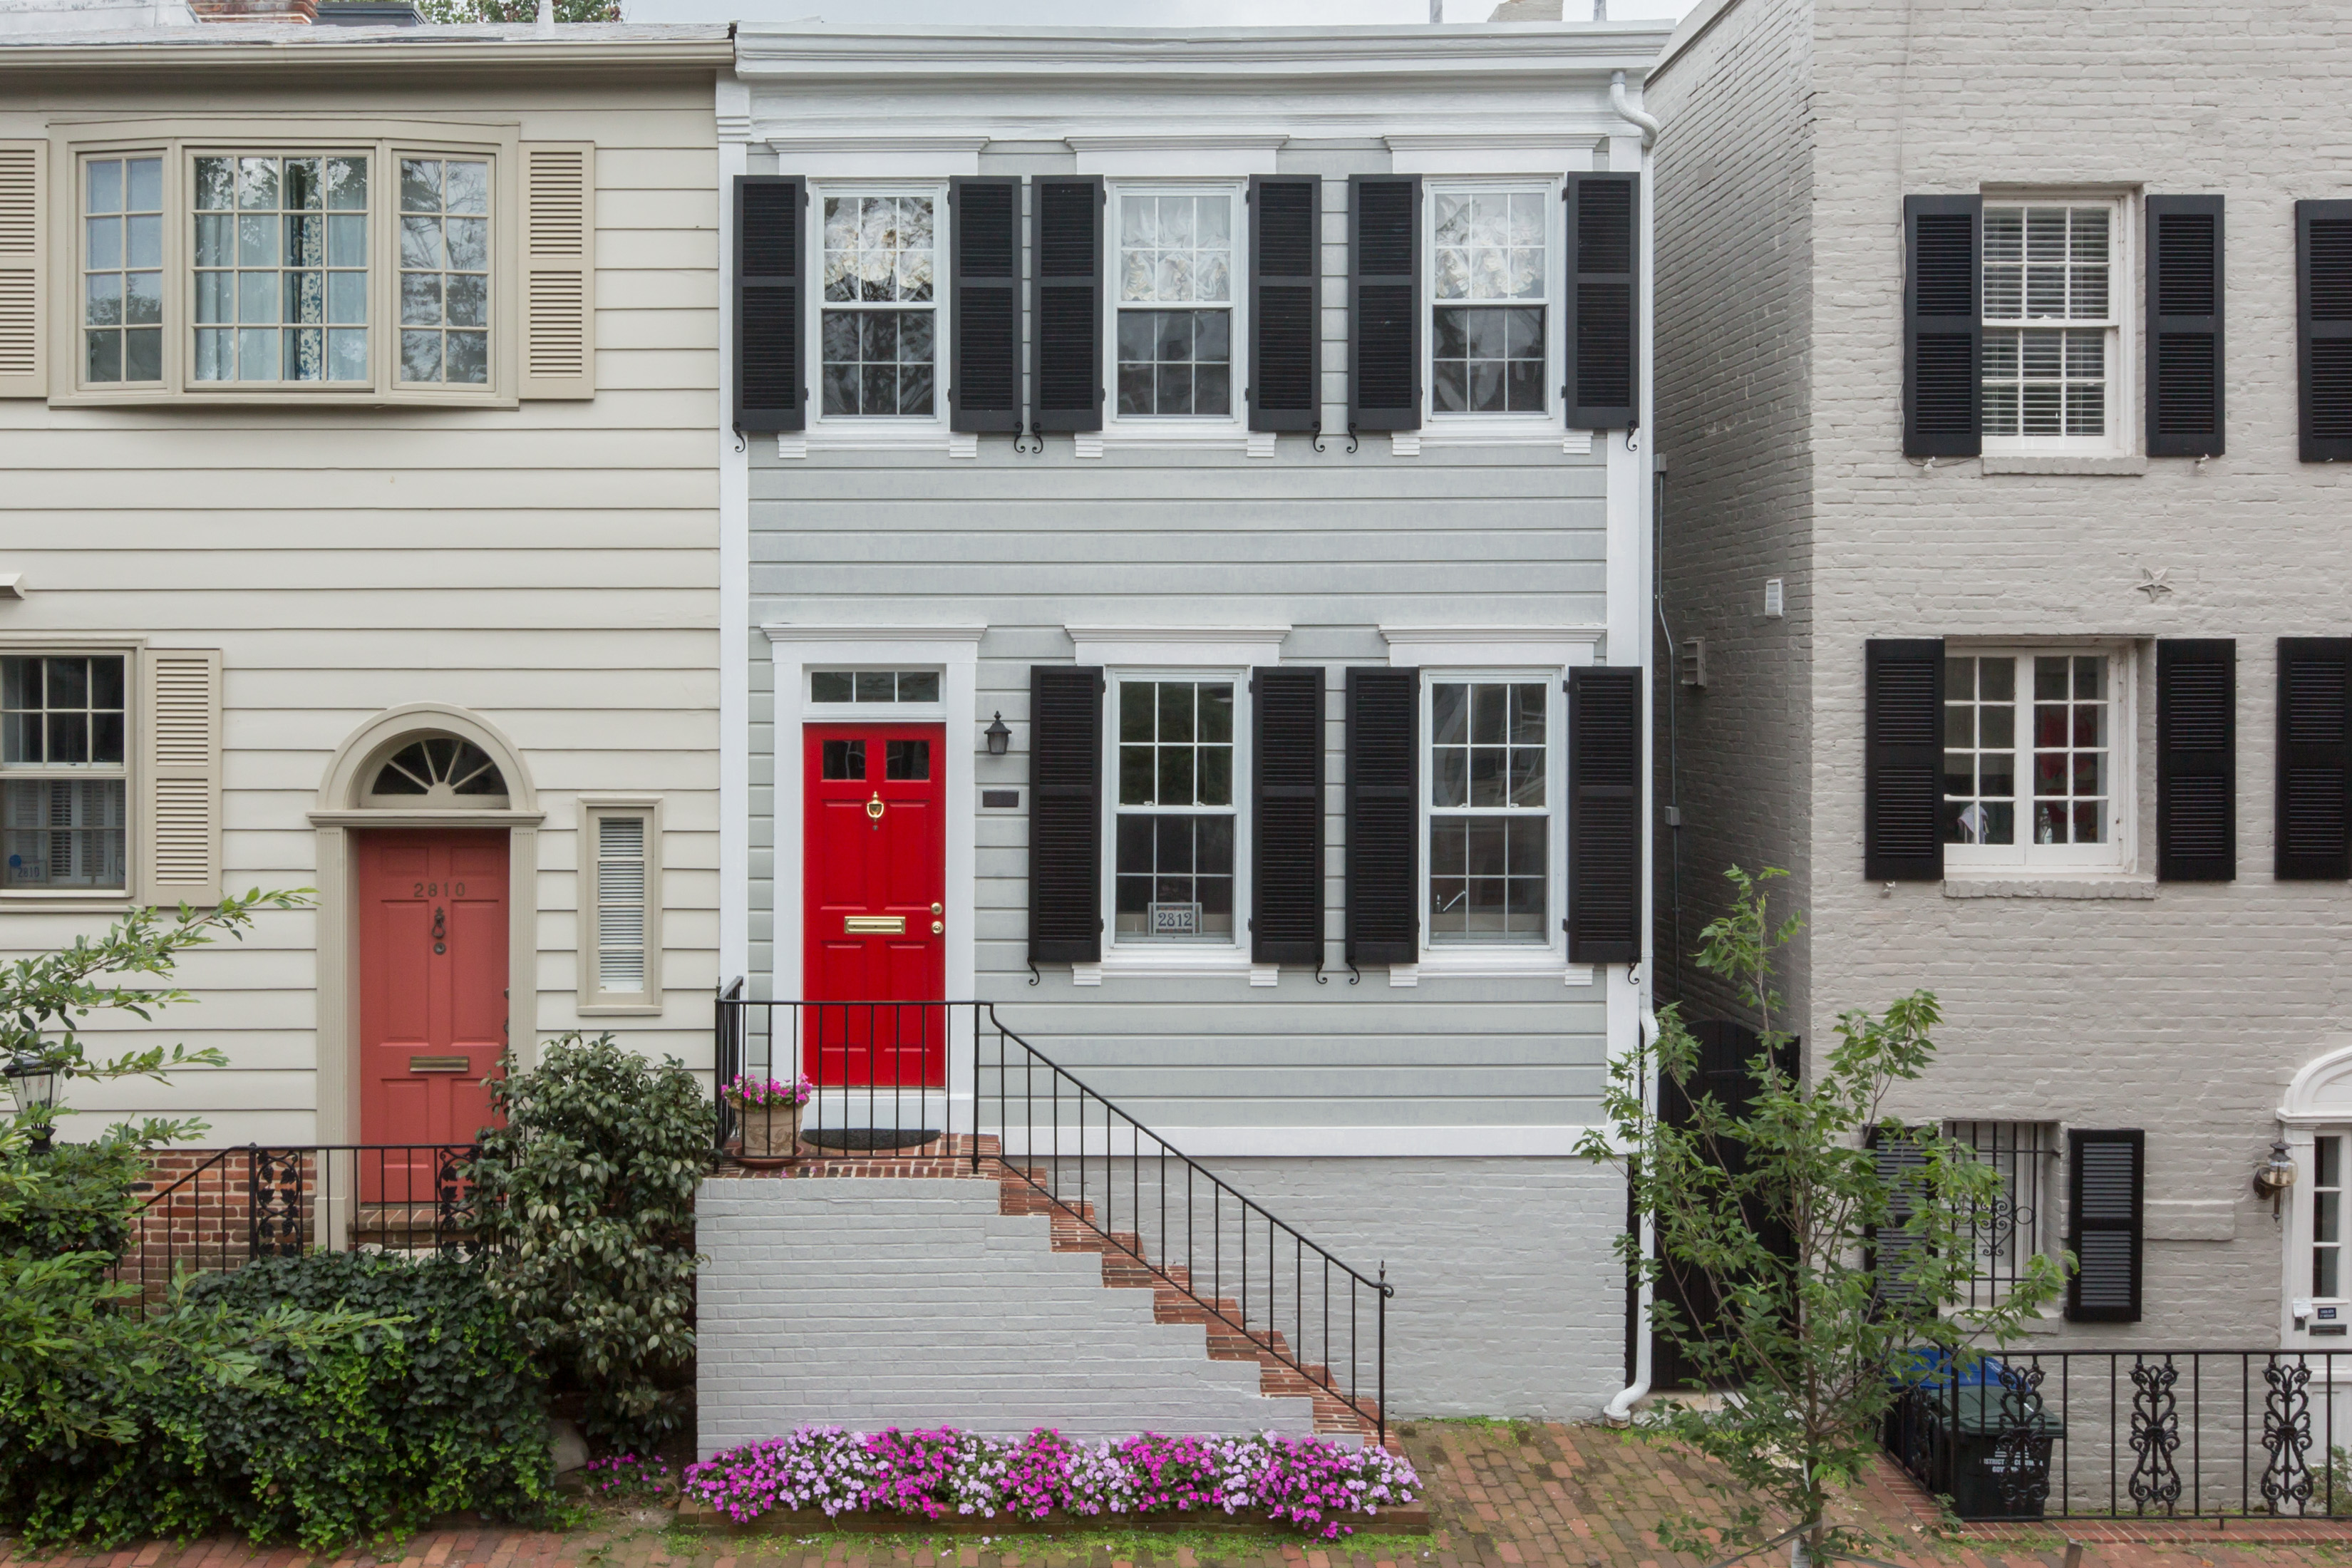 Townhouse for Sale at Georgetown 2812 Dumbarton Street Nw Washington, District Of Columbia 20007 United States